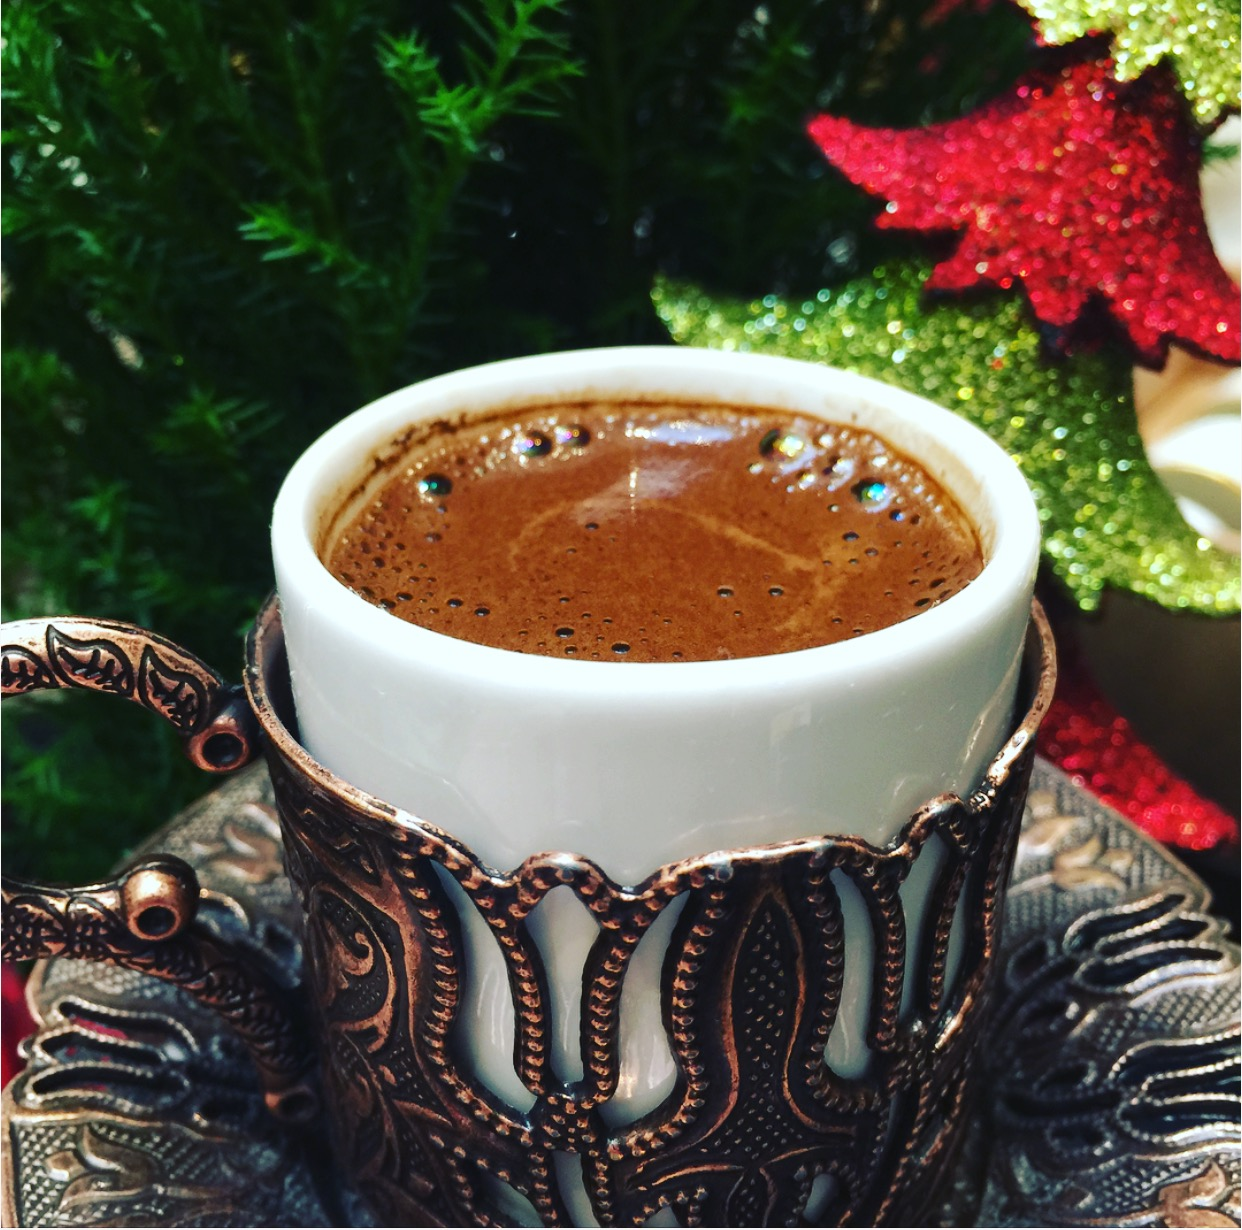 Turkish Coffee at Tyson's Corner